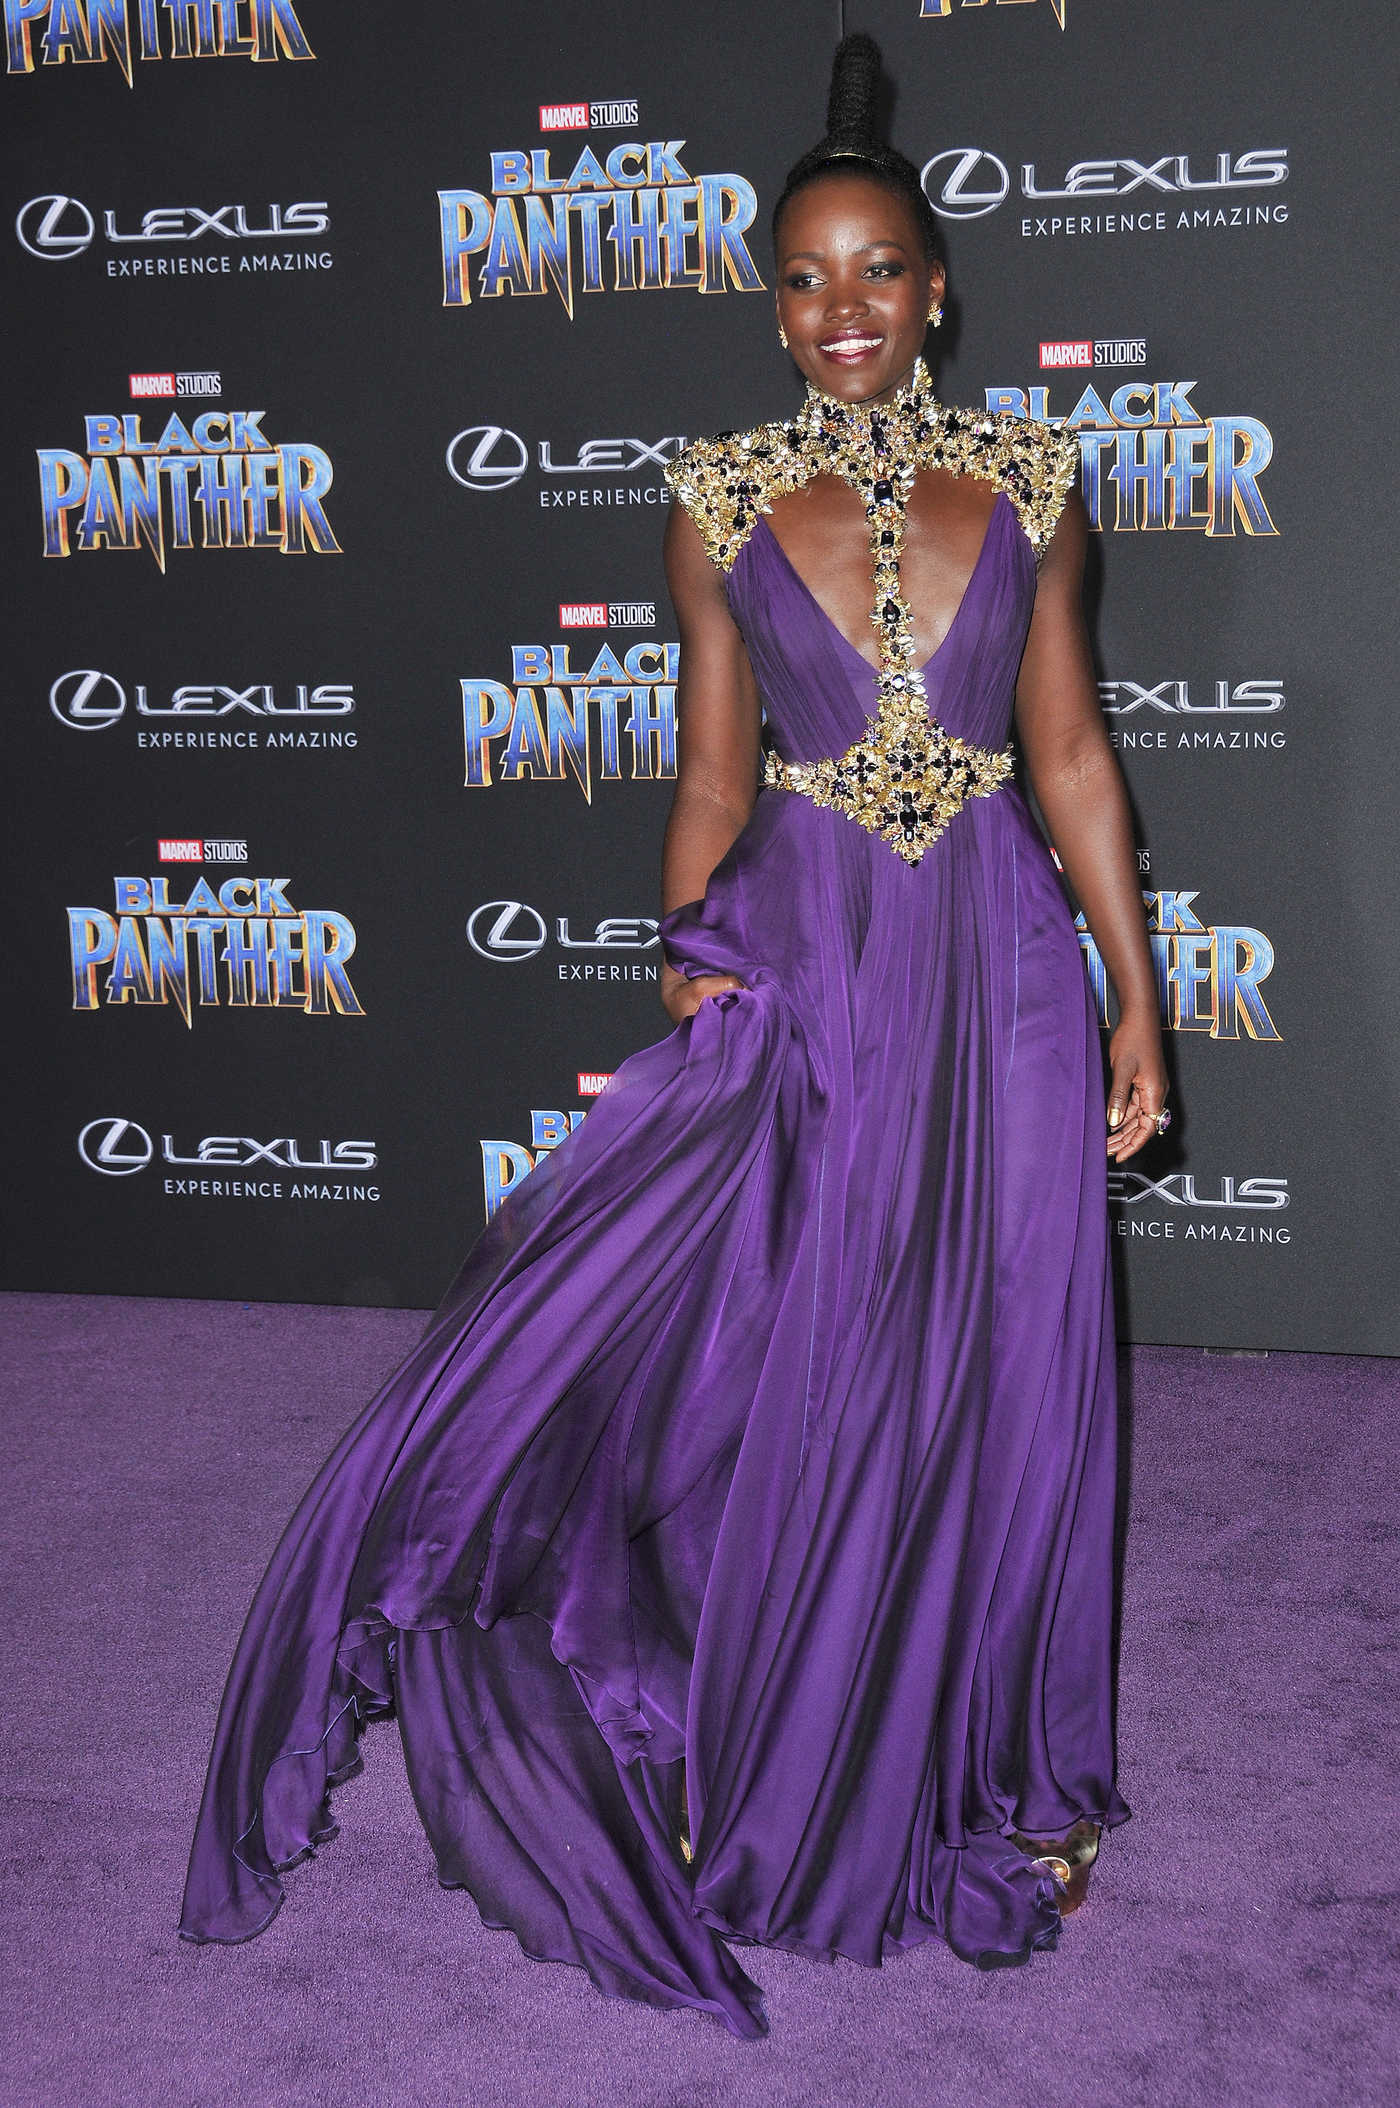 Lupita Nyong'o at the Black Panther Premiere in Hollywood 01/29/2018